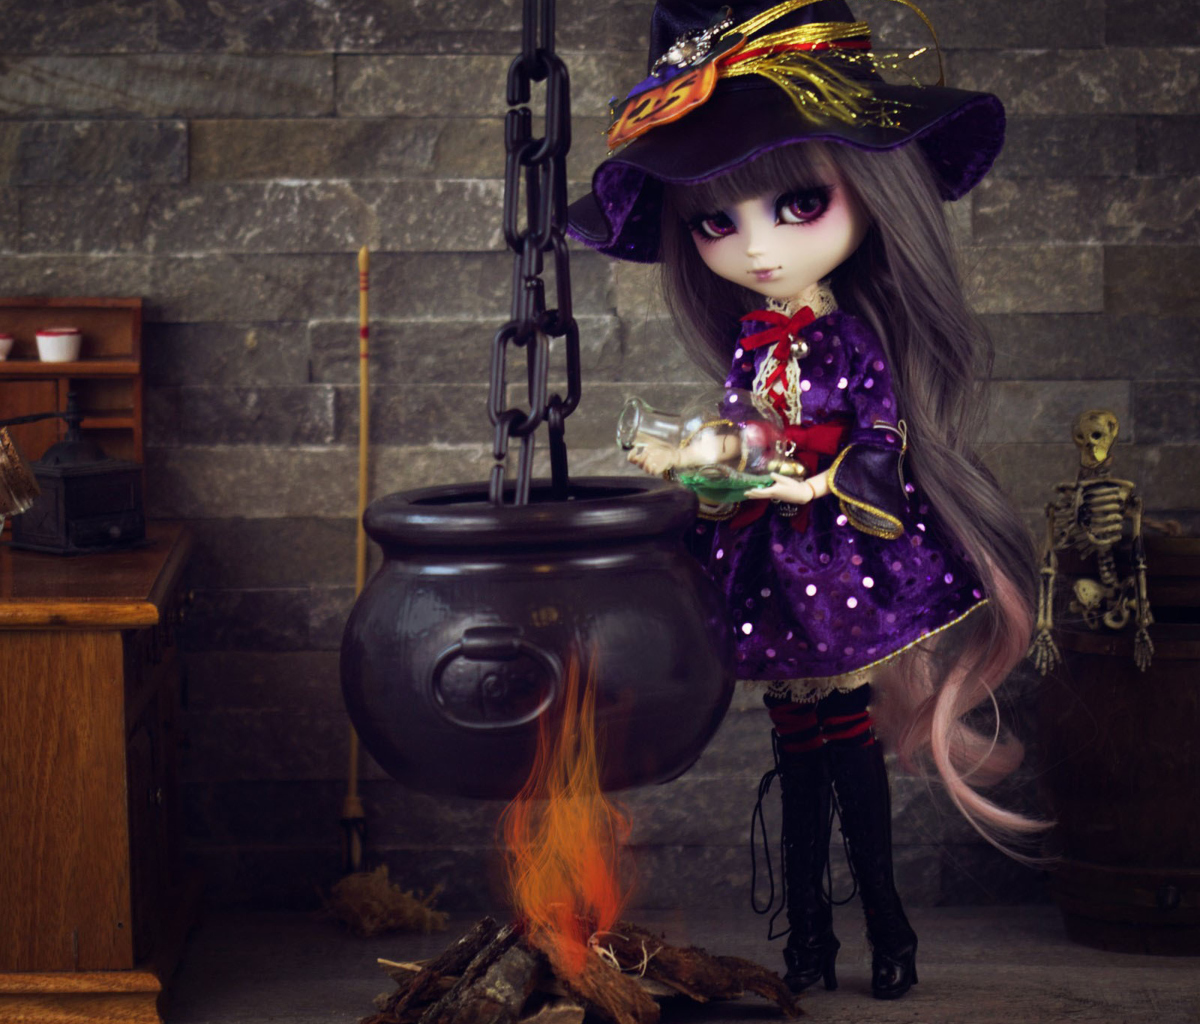 Witch Doll wallpaper 1200x1024